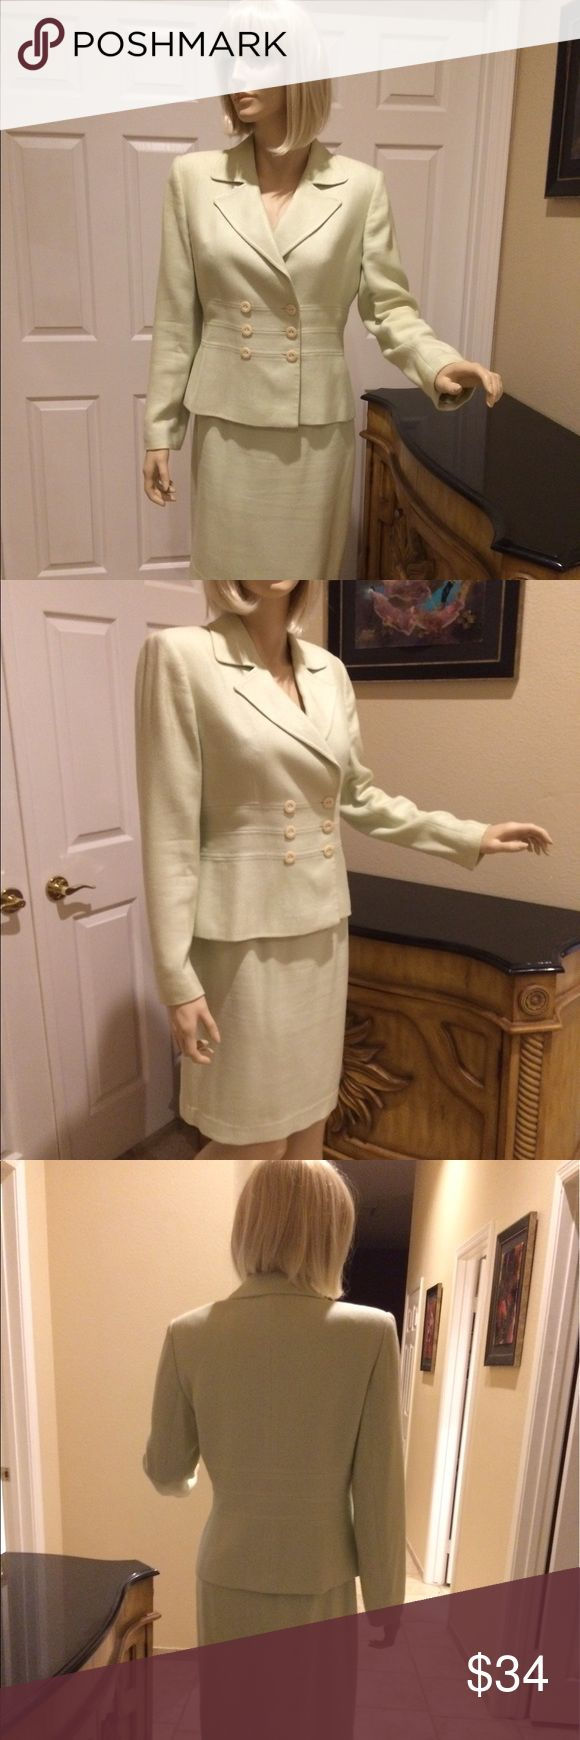 """Women's Size 6 Skirt Suit by Tahari Women's Size 6 Mint green skirt suit by Tahari. In good, previously owned condition.  Skirt length is 21"""". Waist size 29"""". Tahari Skirts Skirt Sets"""